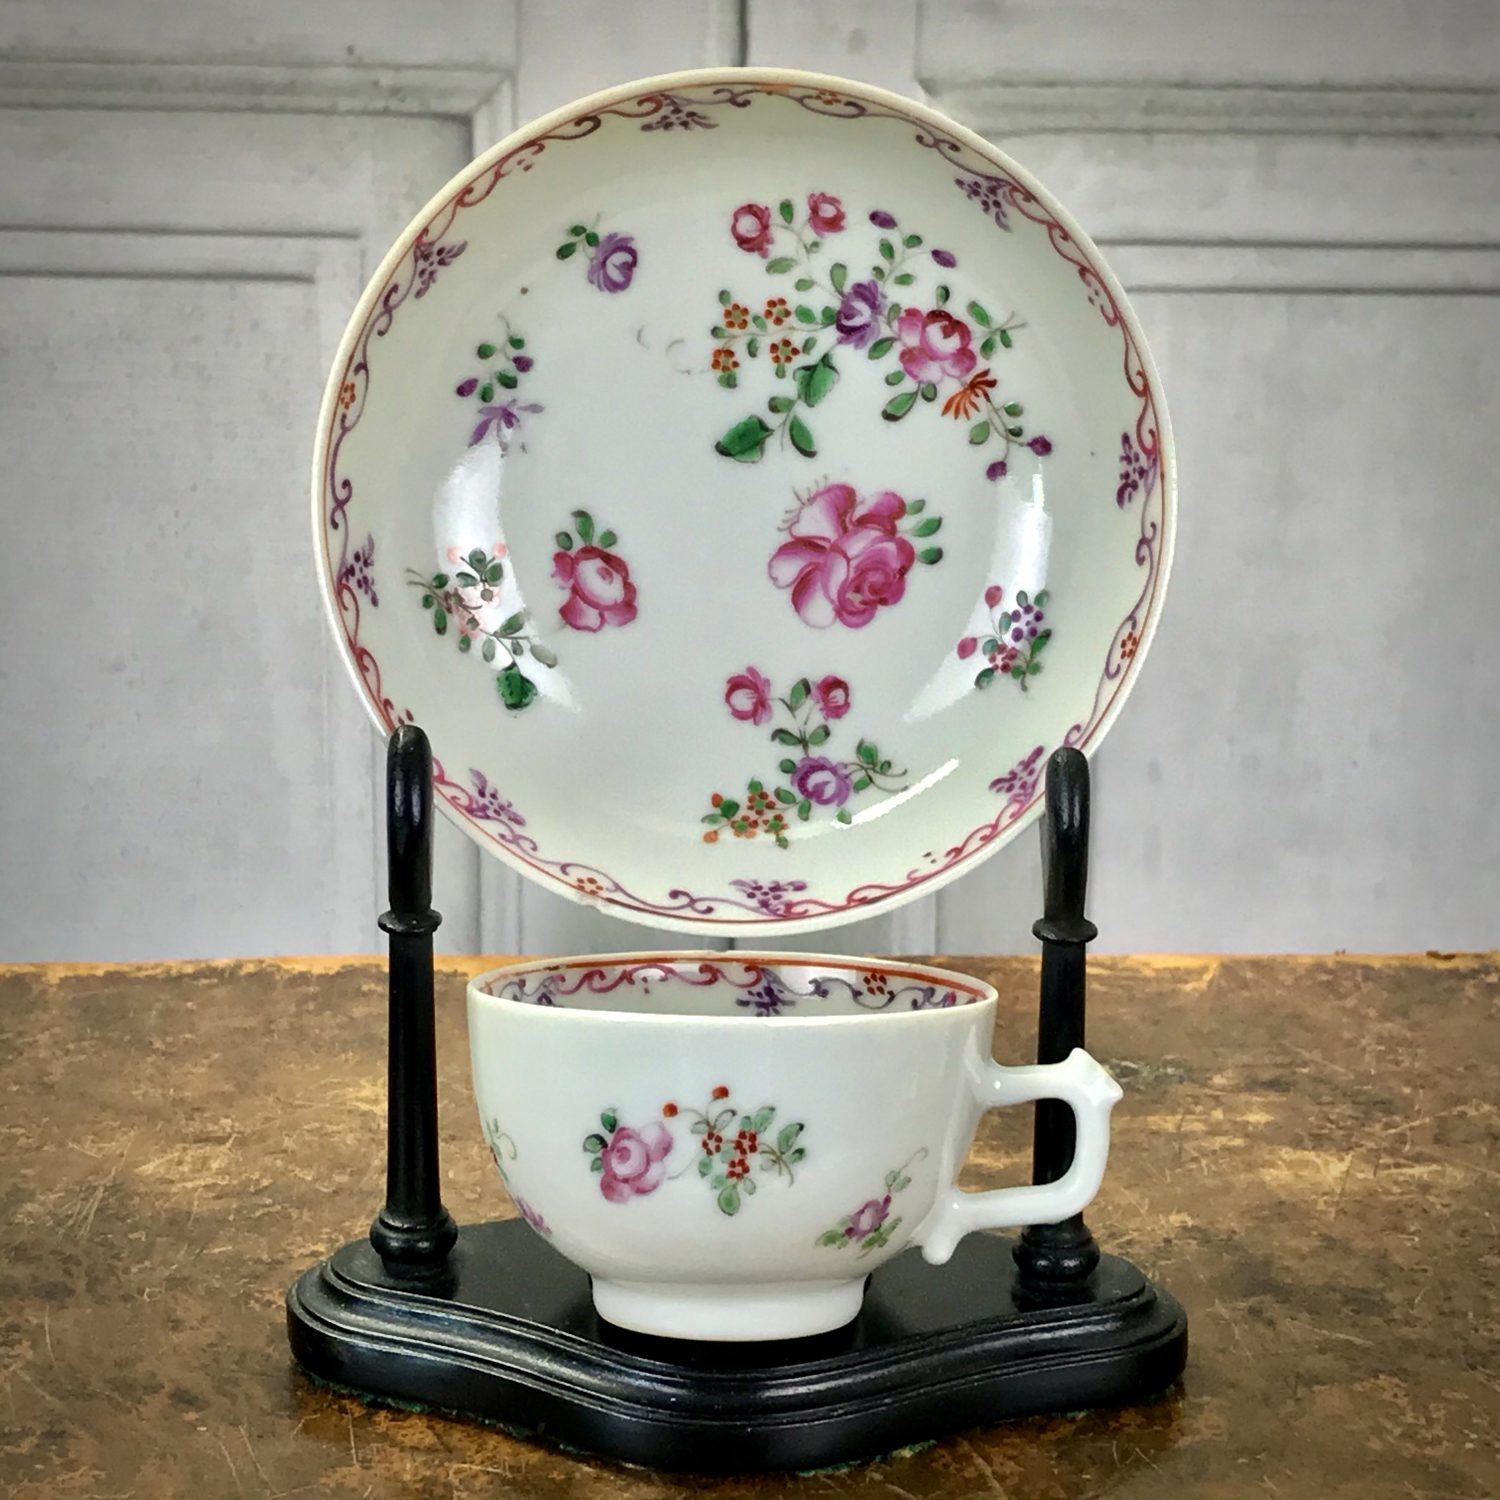 Chinese Export  Small Teacup & Saucer (d)